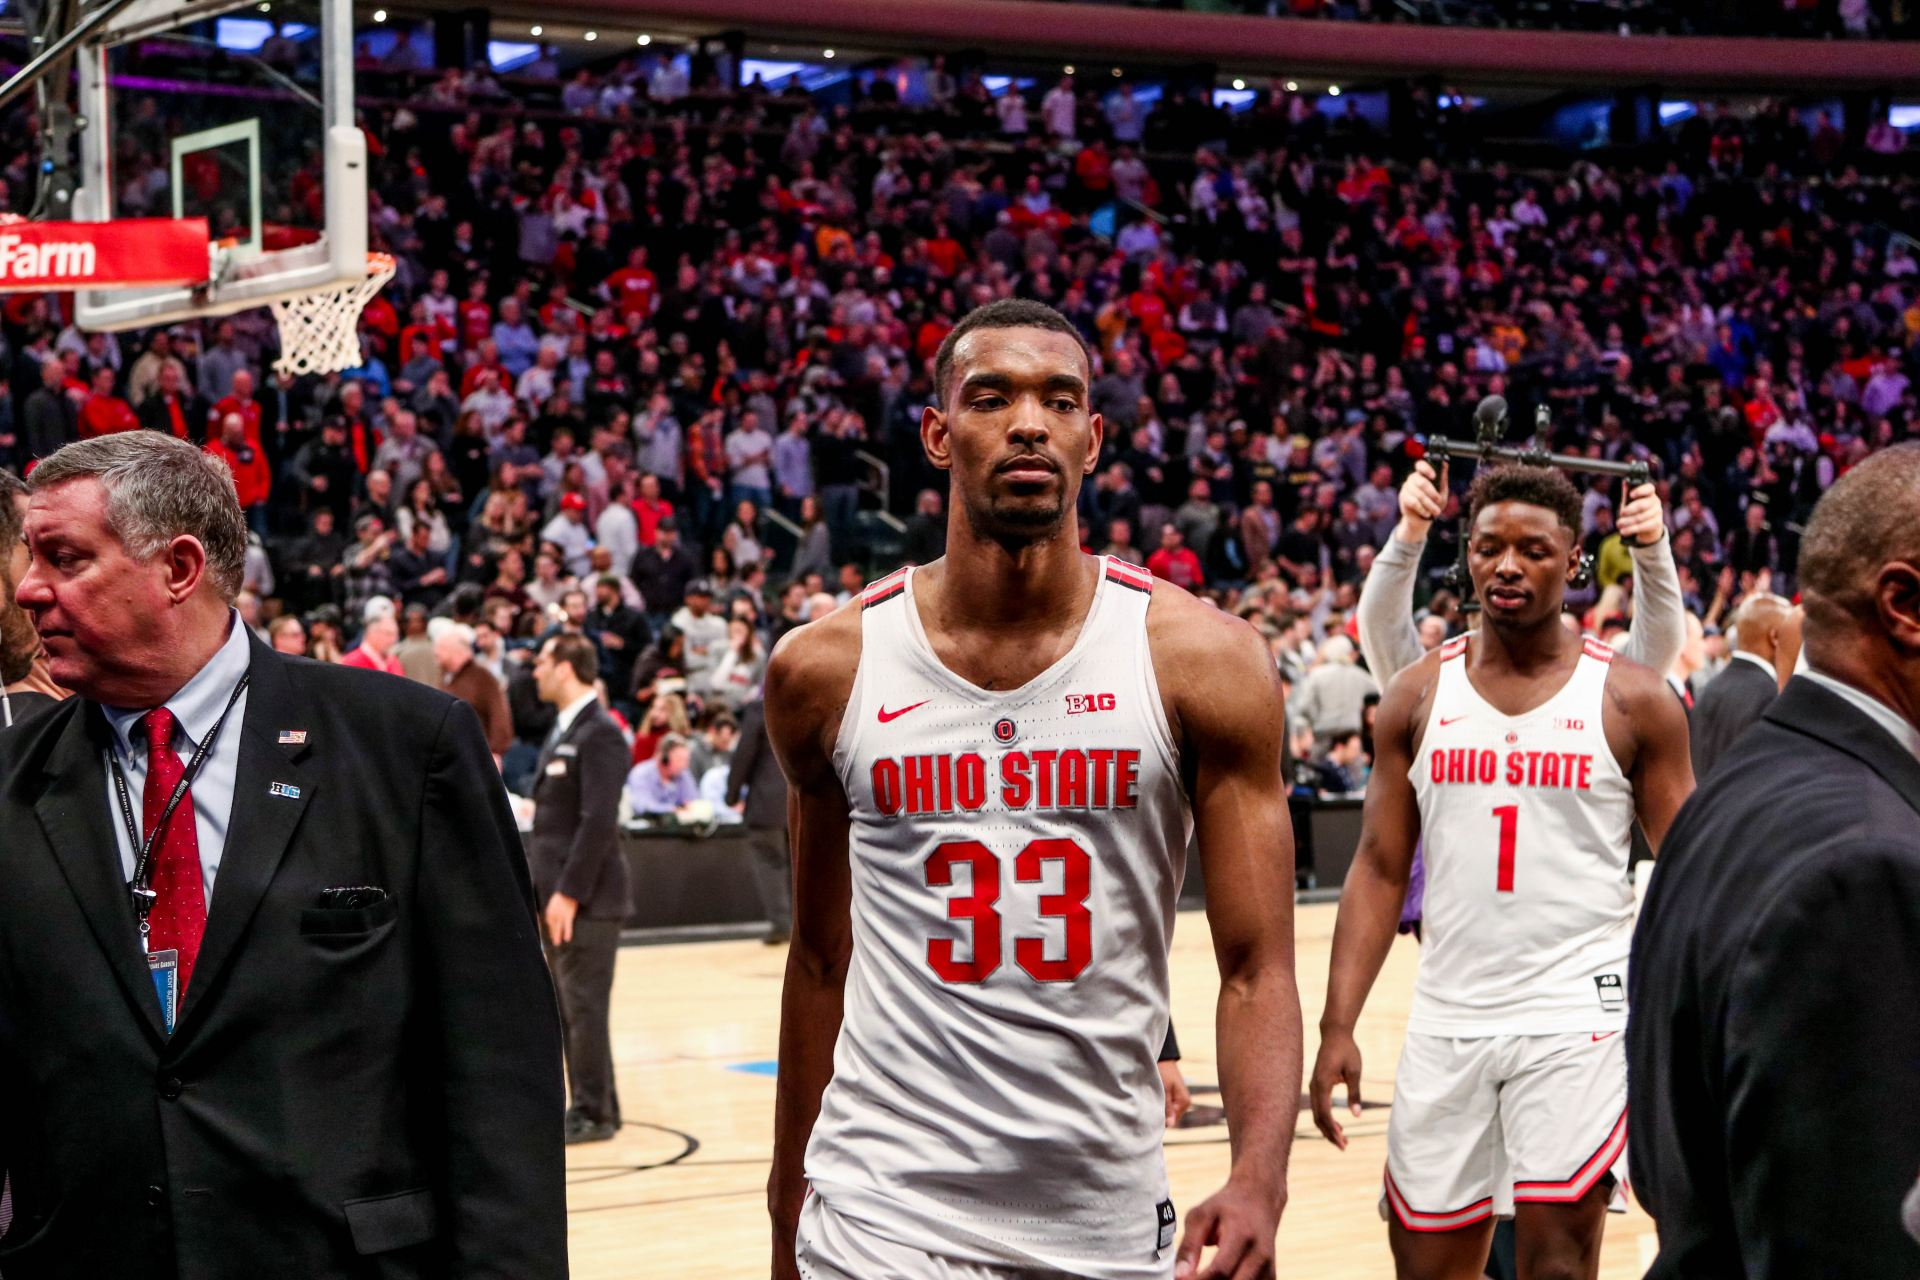 Men's Basketball: Second-half Ohio State comeback not enough in 90-84 loss to Gonzaga in NCAA Tournament